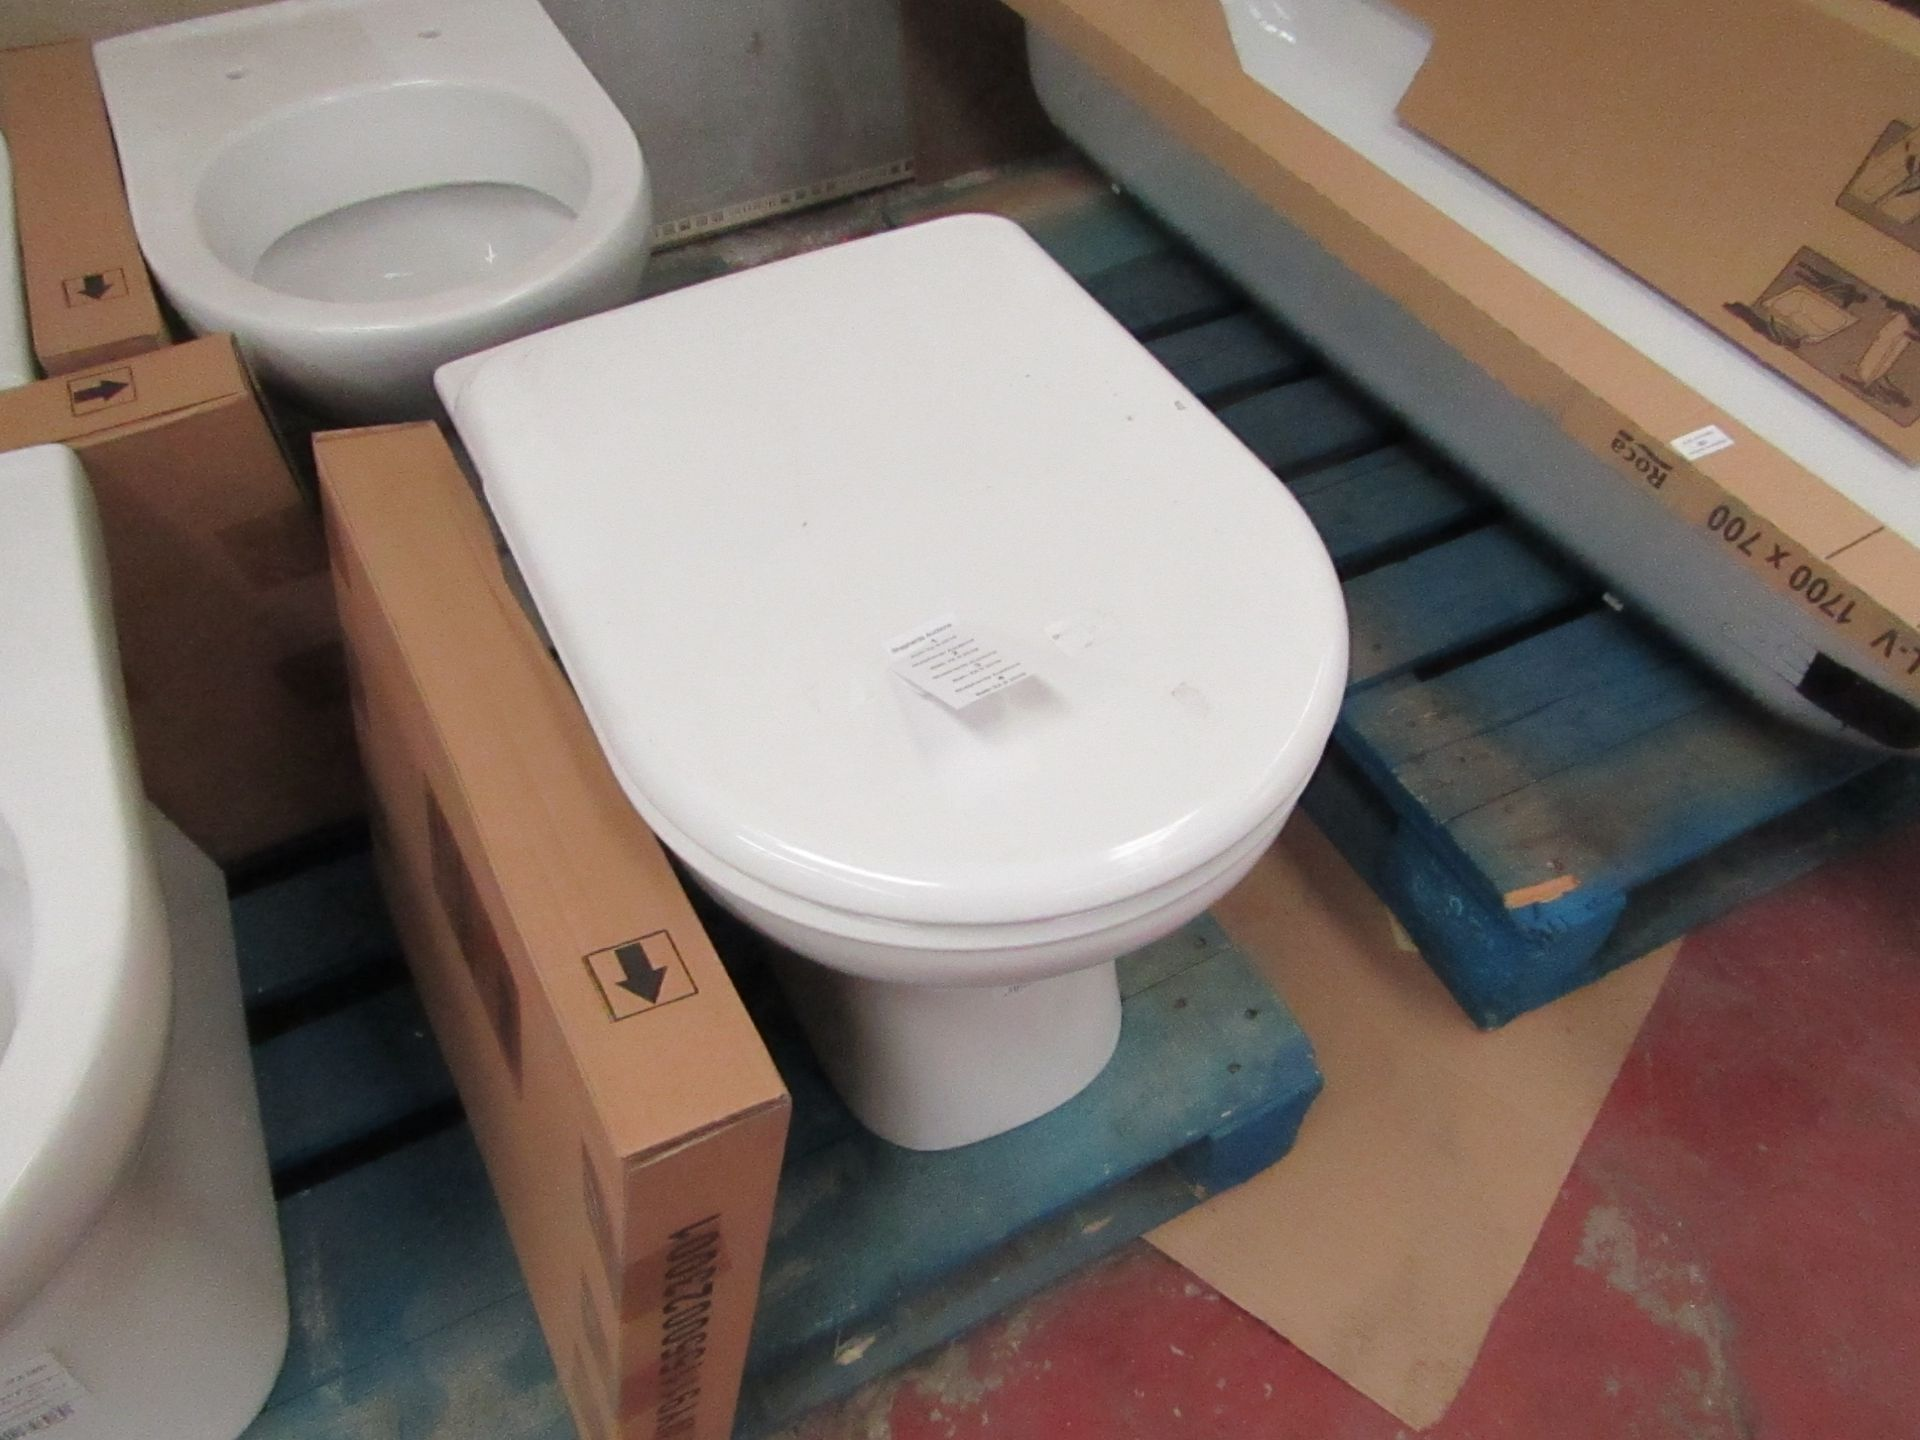 Lotto 1 - Jika Deep floor mounted back to wall toilet pan with toilet seat, new